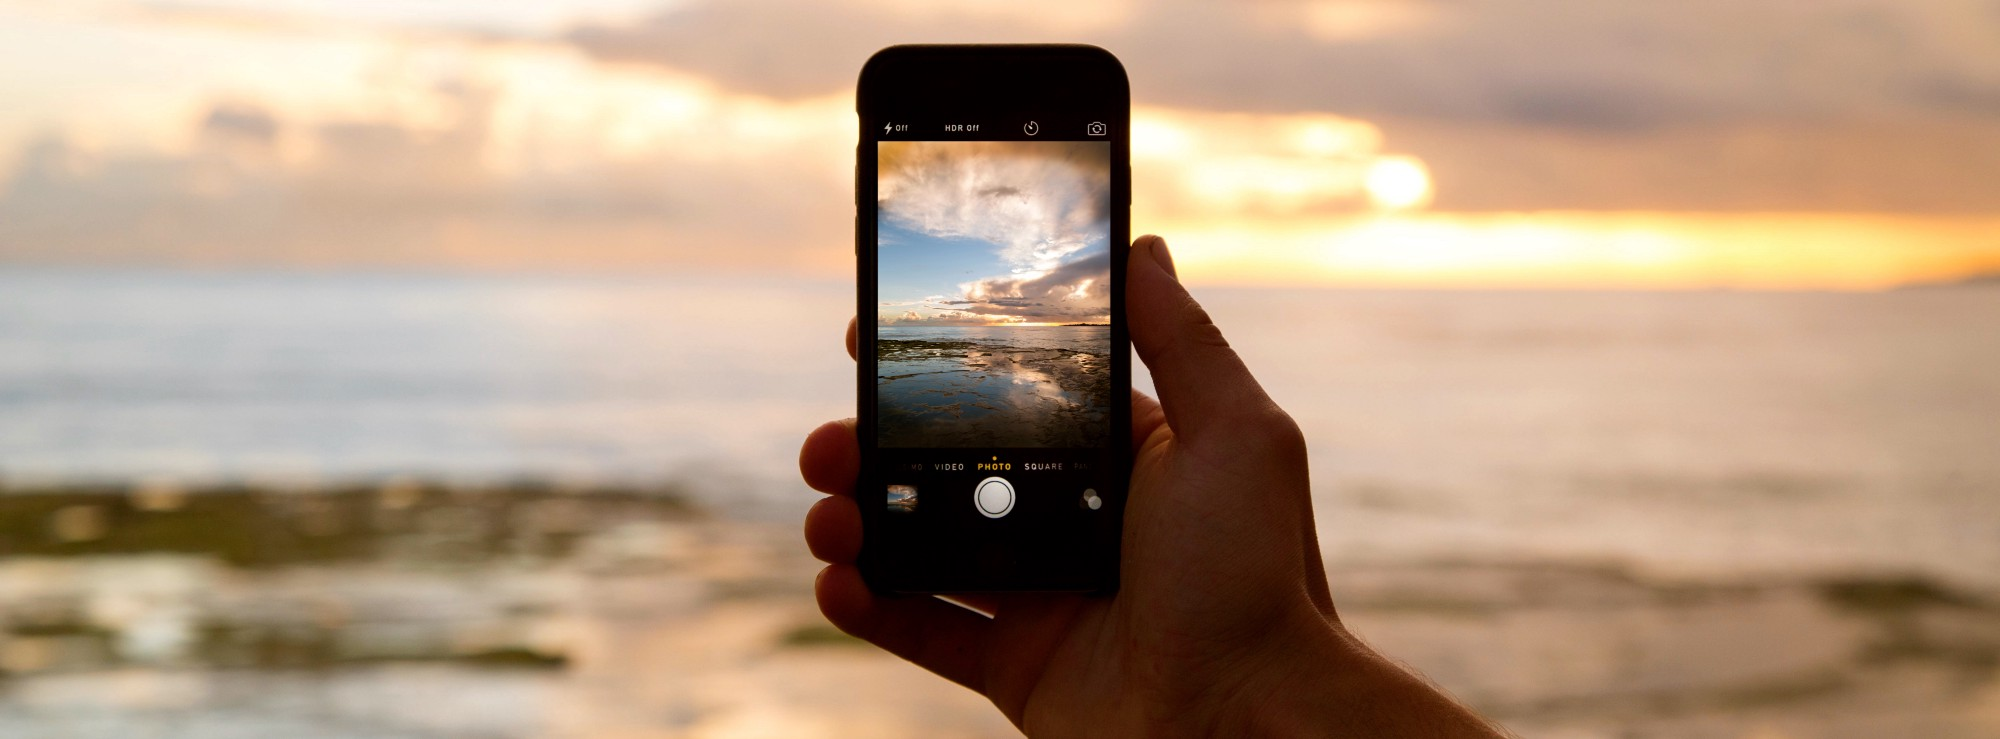 useful mobile app ideas that don t exist zero to one